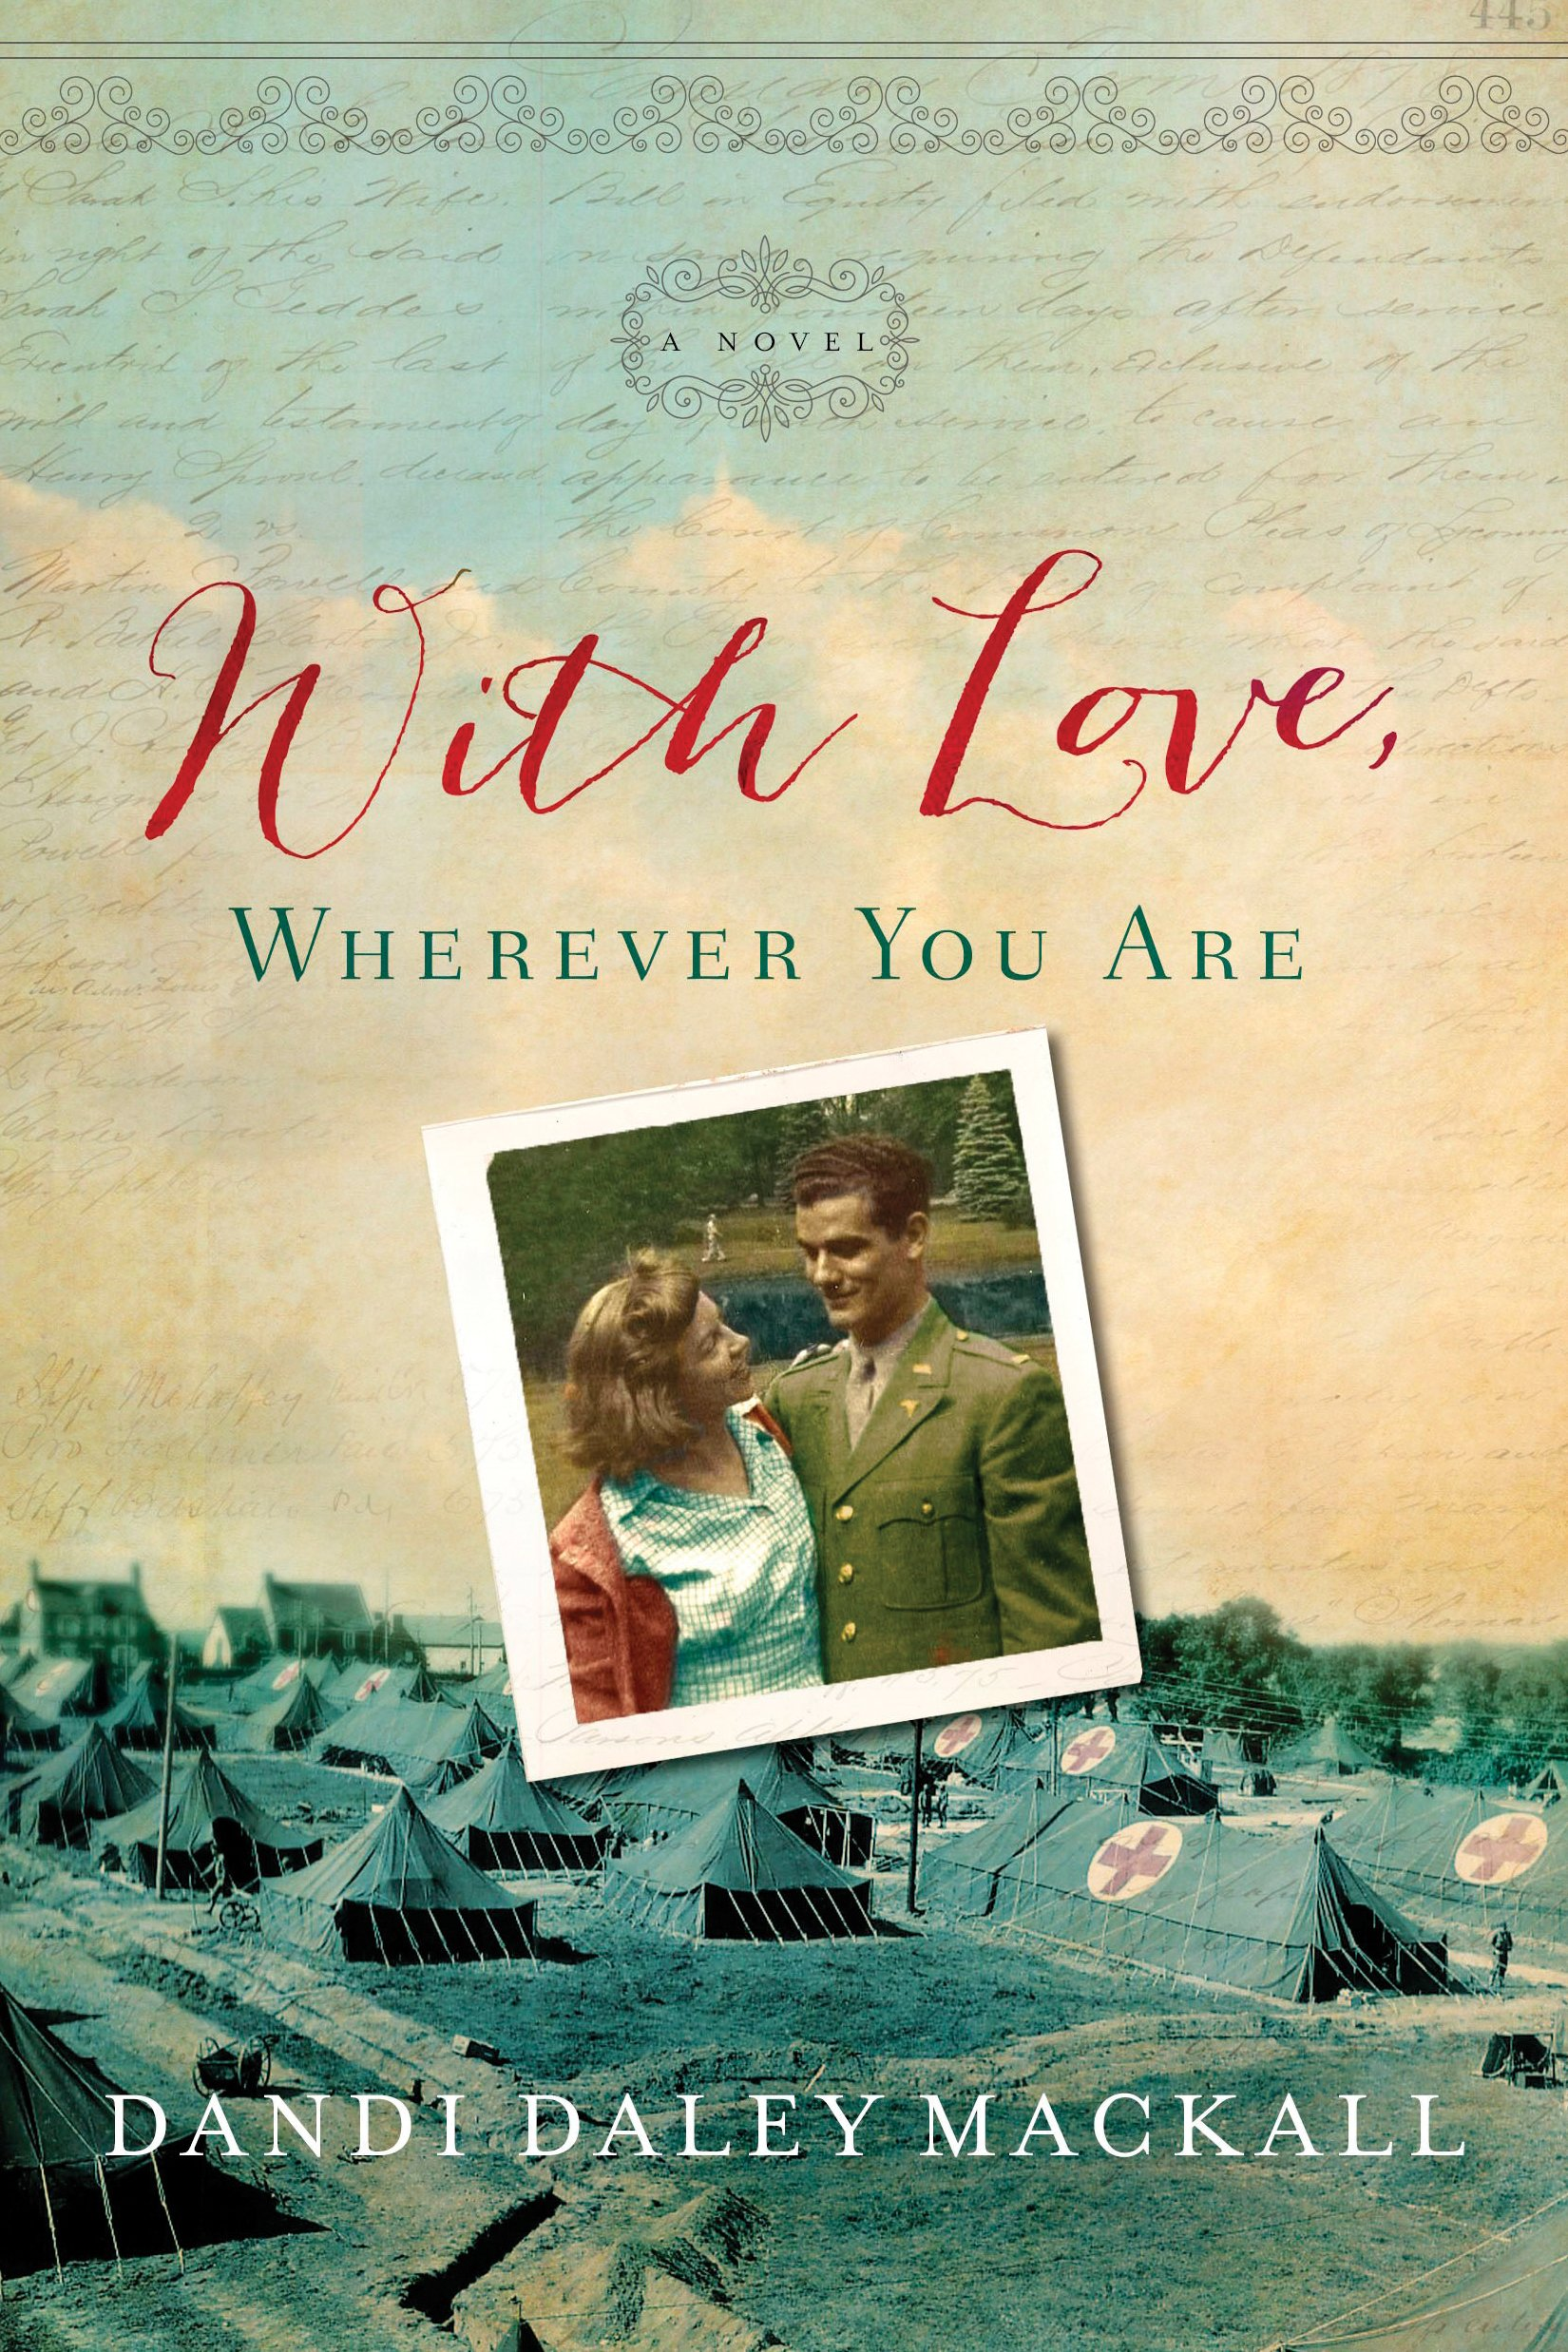 With Love, Wherever You Are by Dandi Daley Mackall